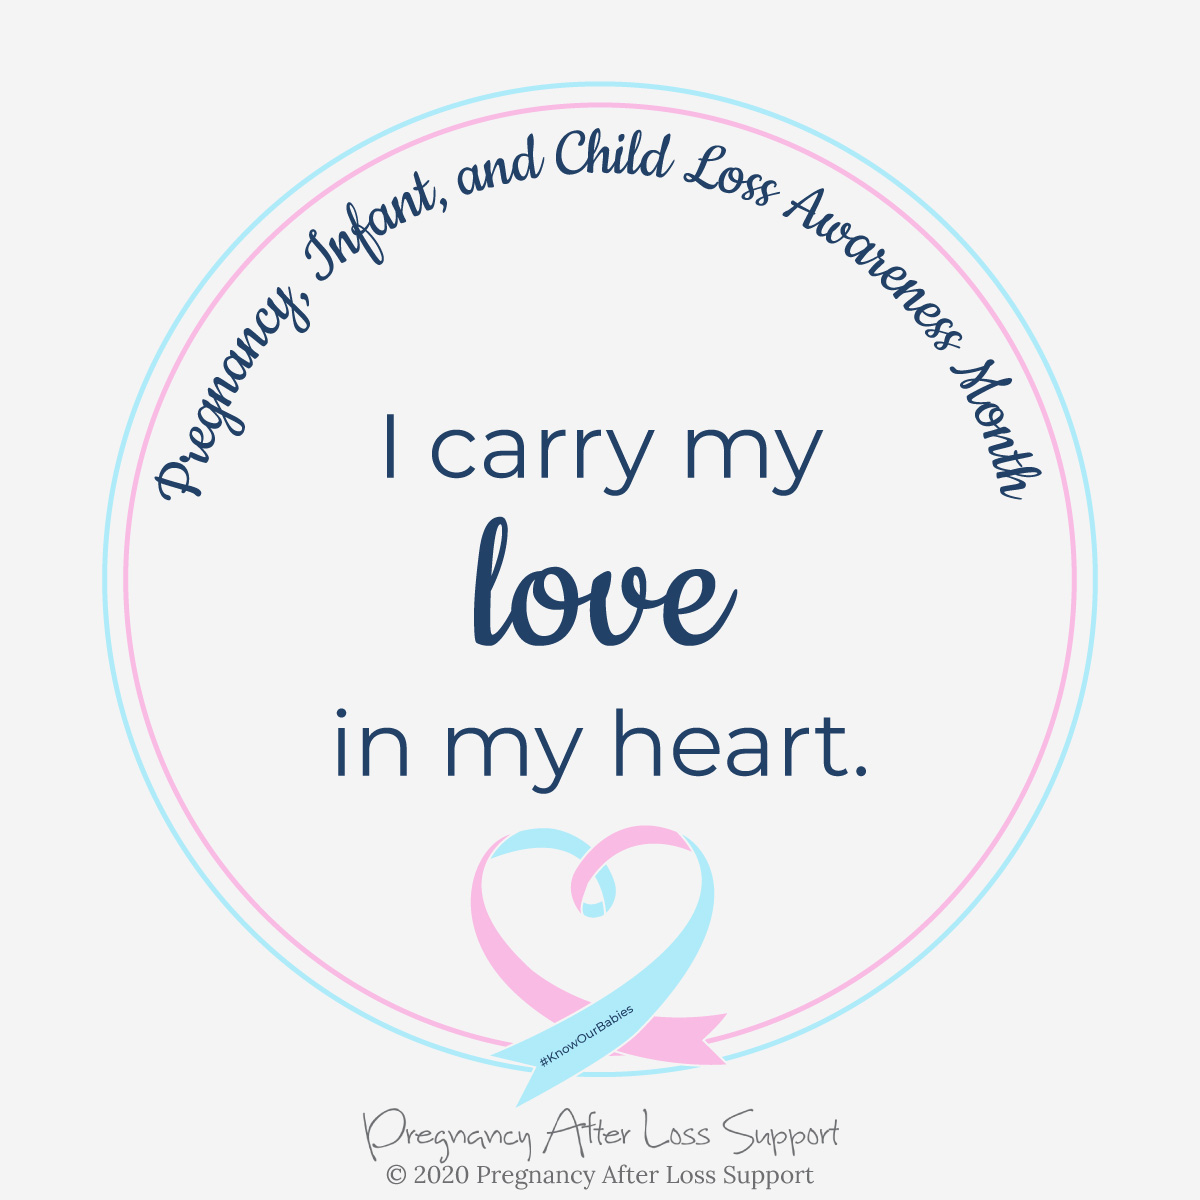 I carry my love in my heart - Pregnancy, Infant, and Child Loss Awareness Month